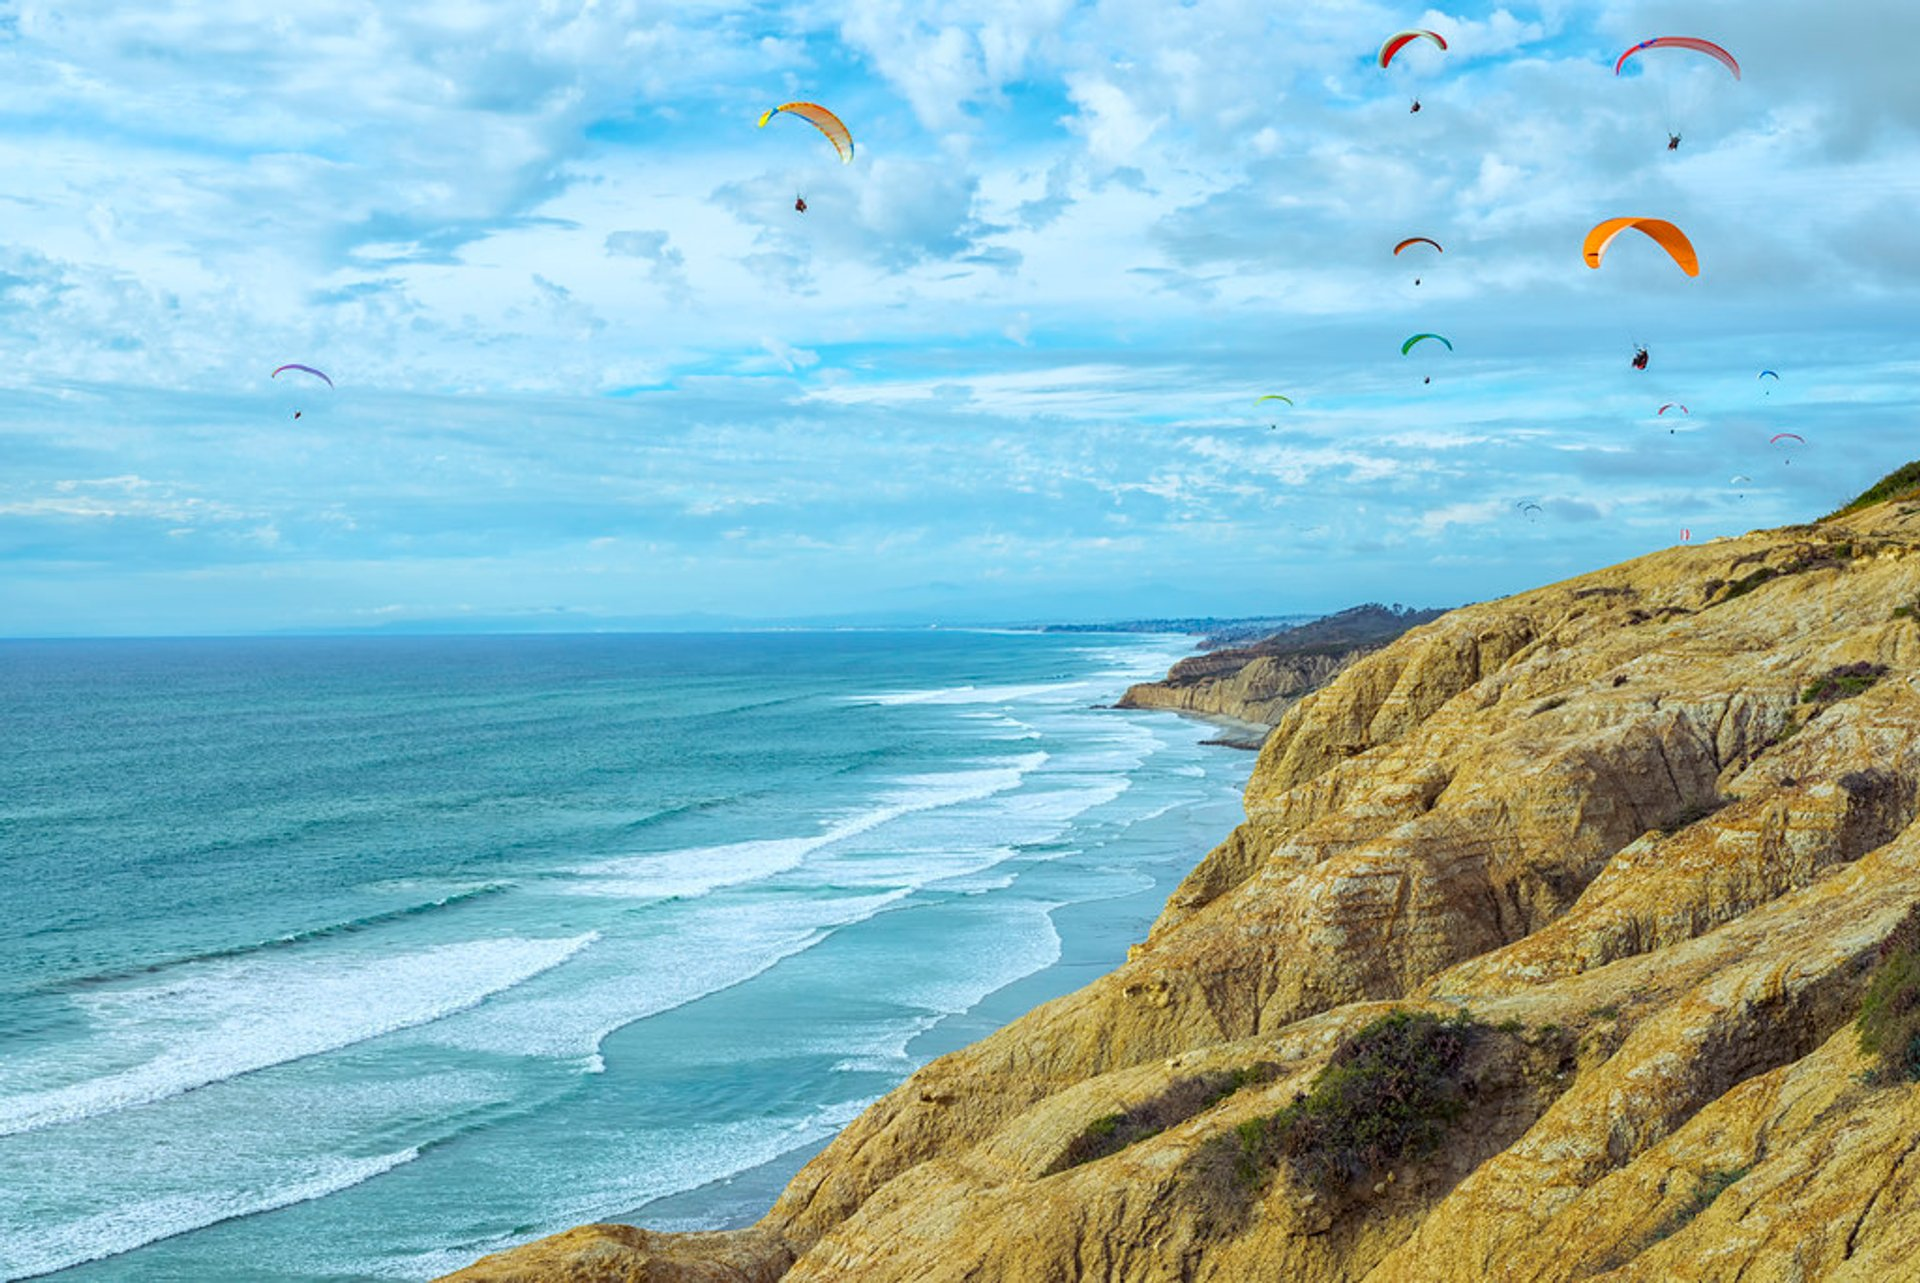 Best time for Paragliding in San Diego 2020